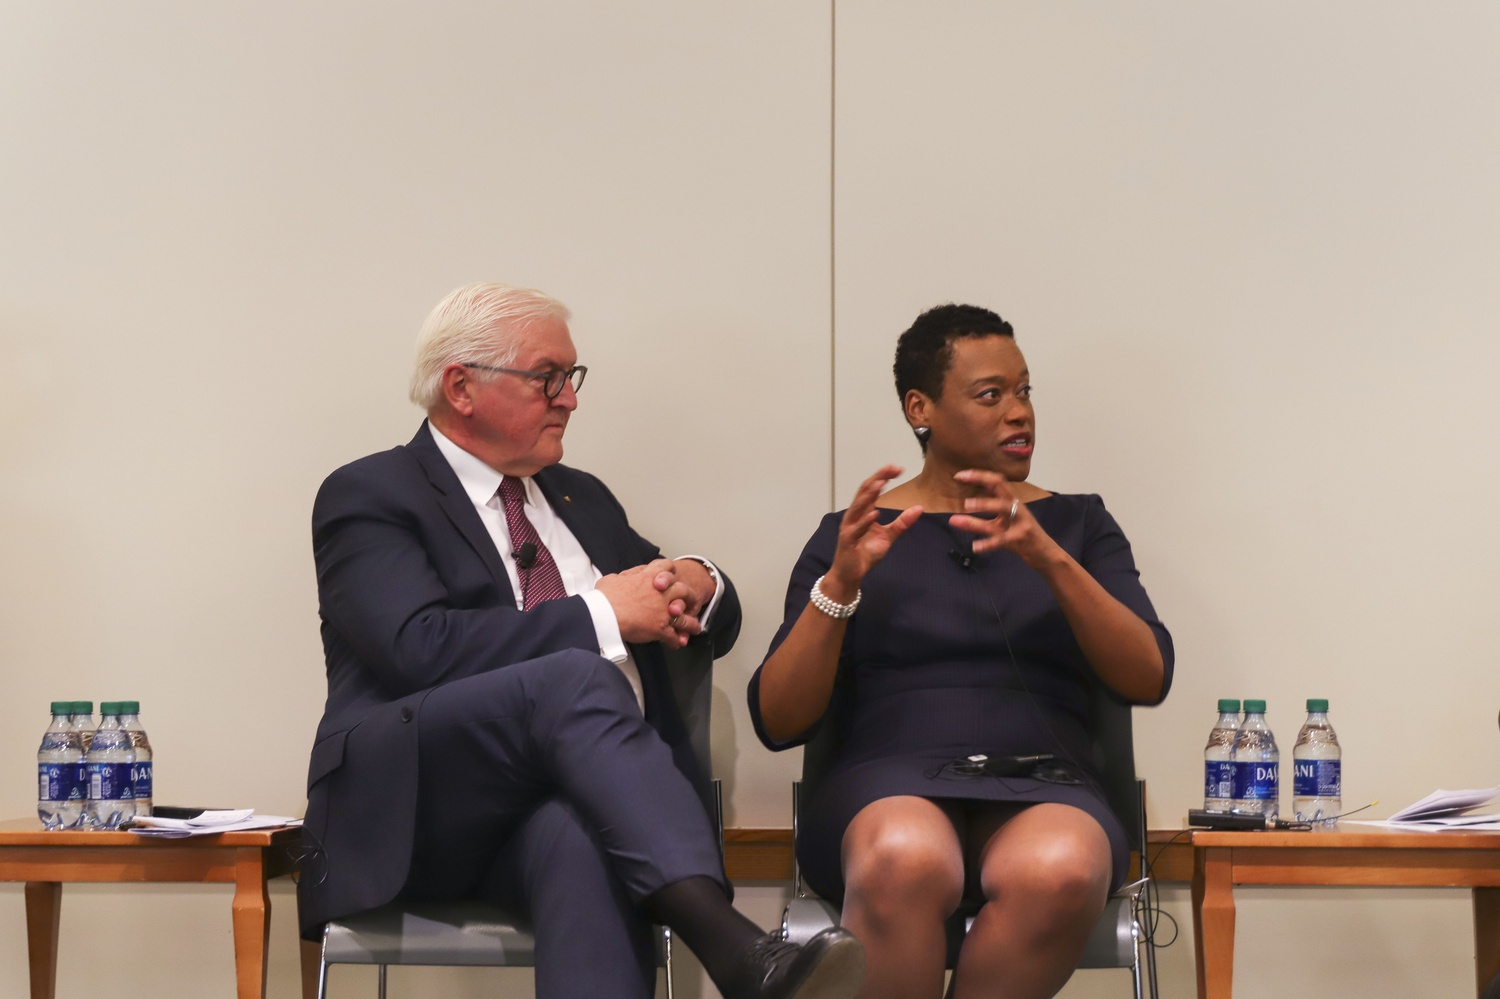 The president of Germany Frank-Walter Steinmeier (left) and Melissa Nobles (right) discuss the ethics of the digital transformation and transatlantic relations at Harvard Law School.